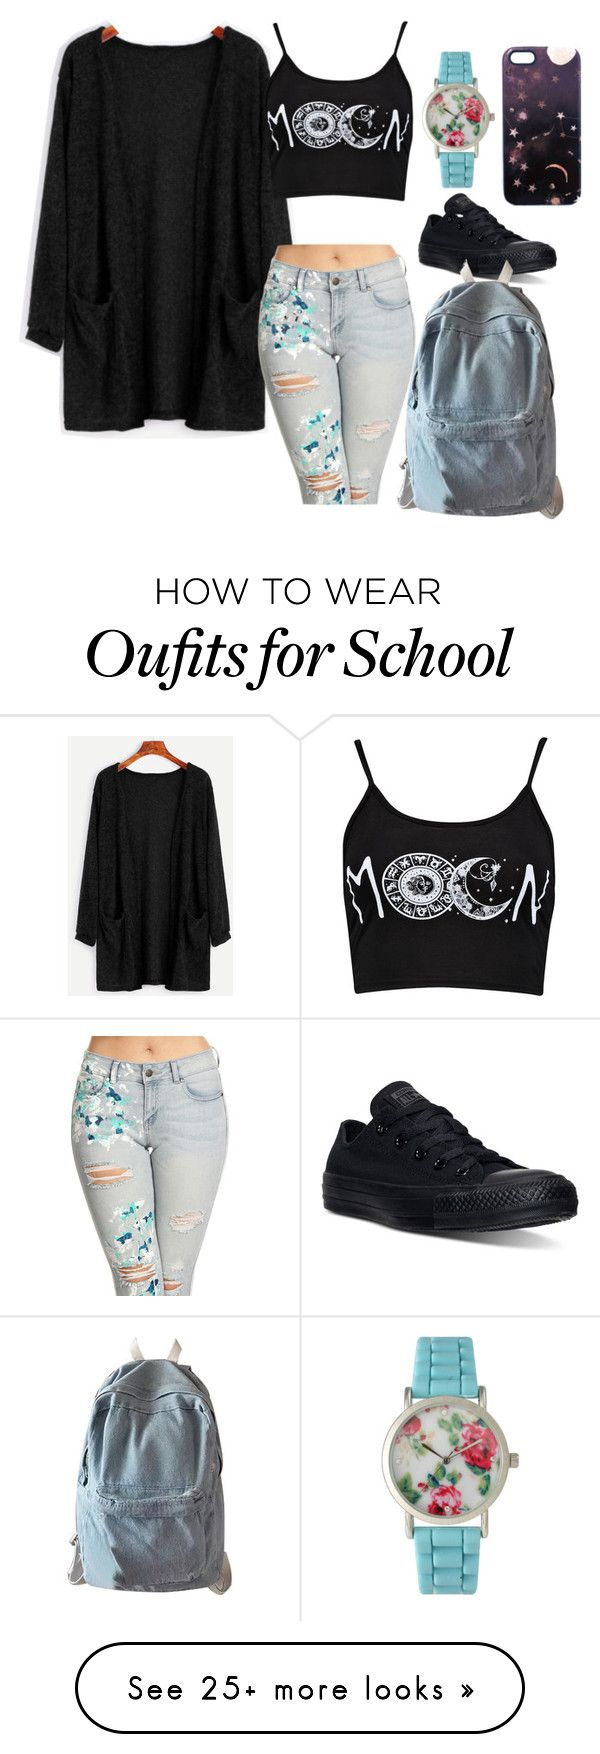 """""""Summer Outfit #1"""" by luvlybunny on Polyvore featuring Boohoo, Converse, WithChic, Nikki Strange, Olivia Pratt, Summer, outfit and Flowers"""